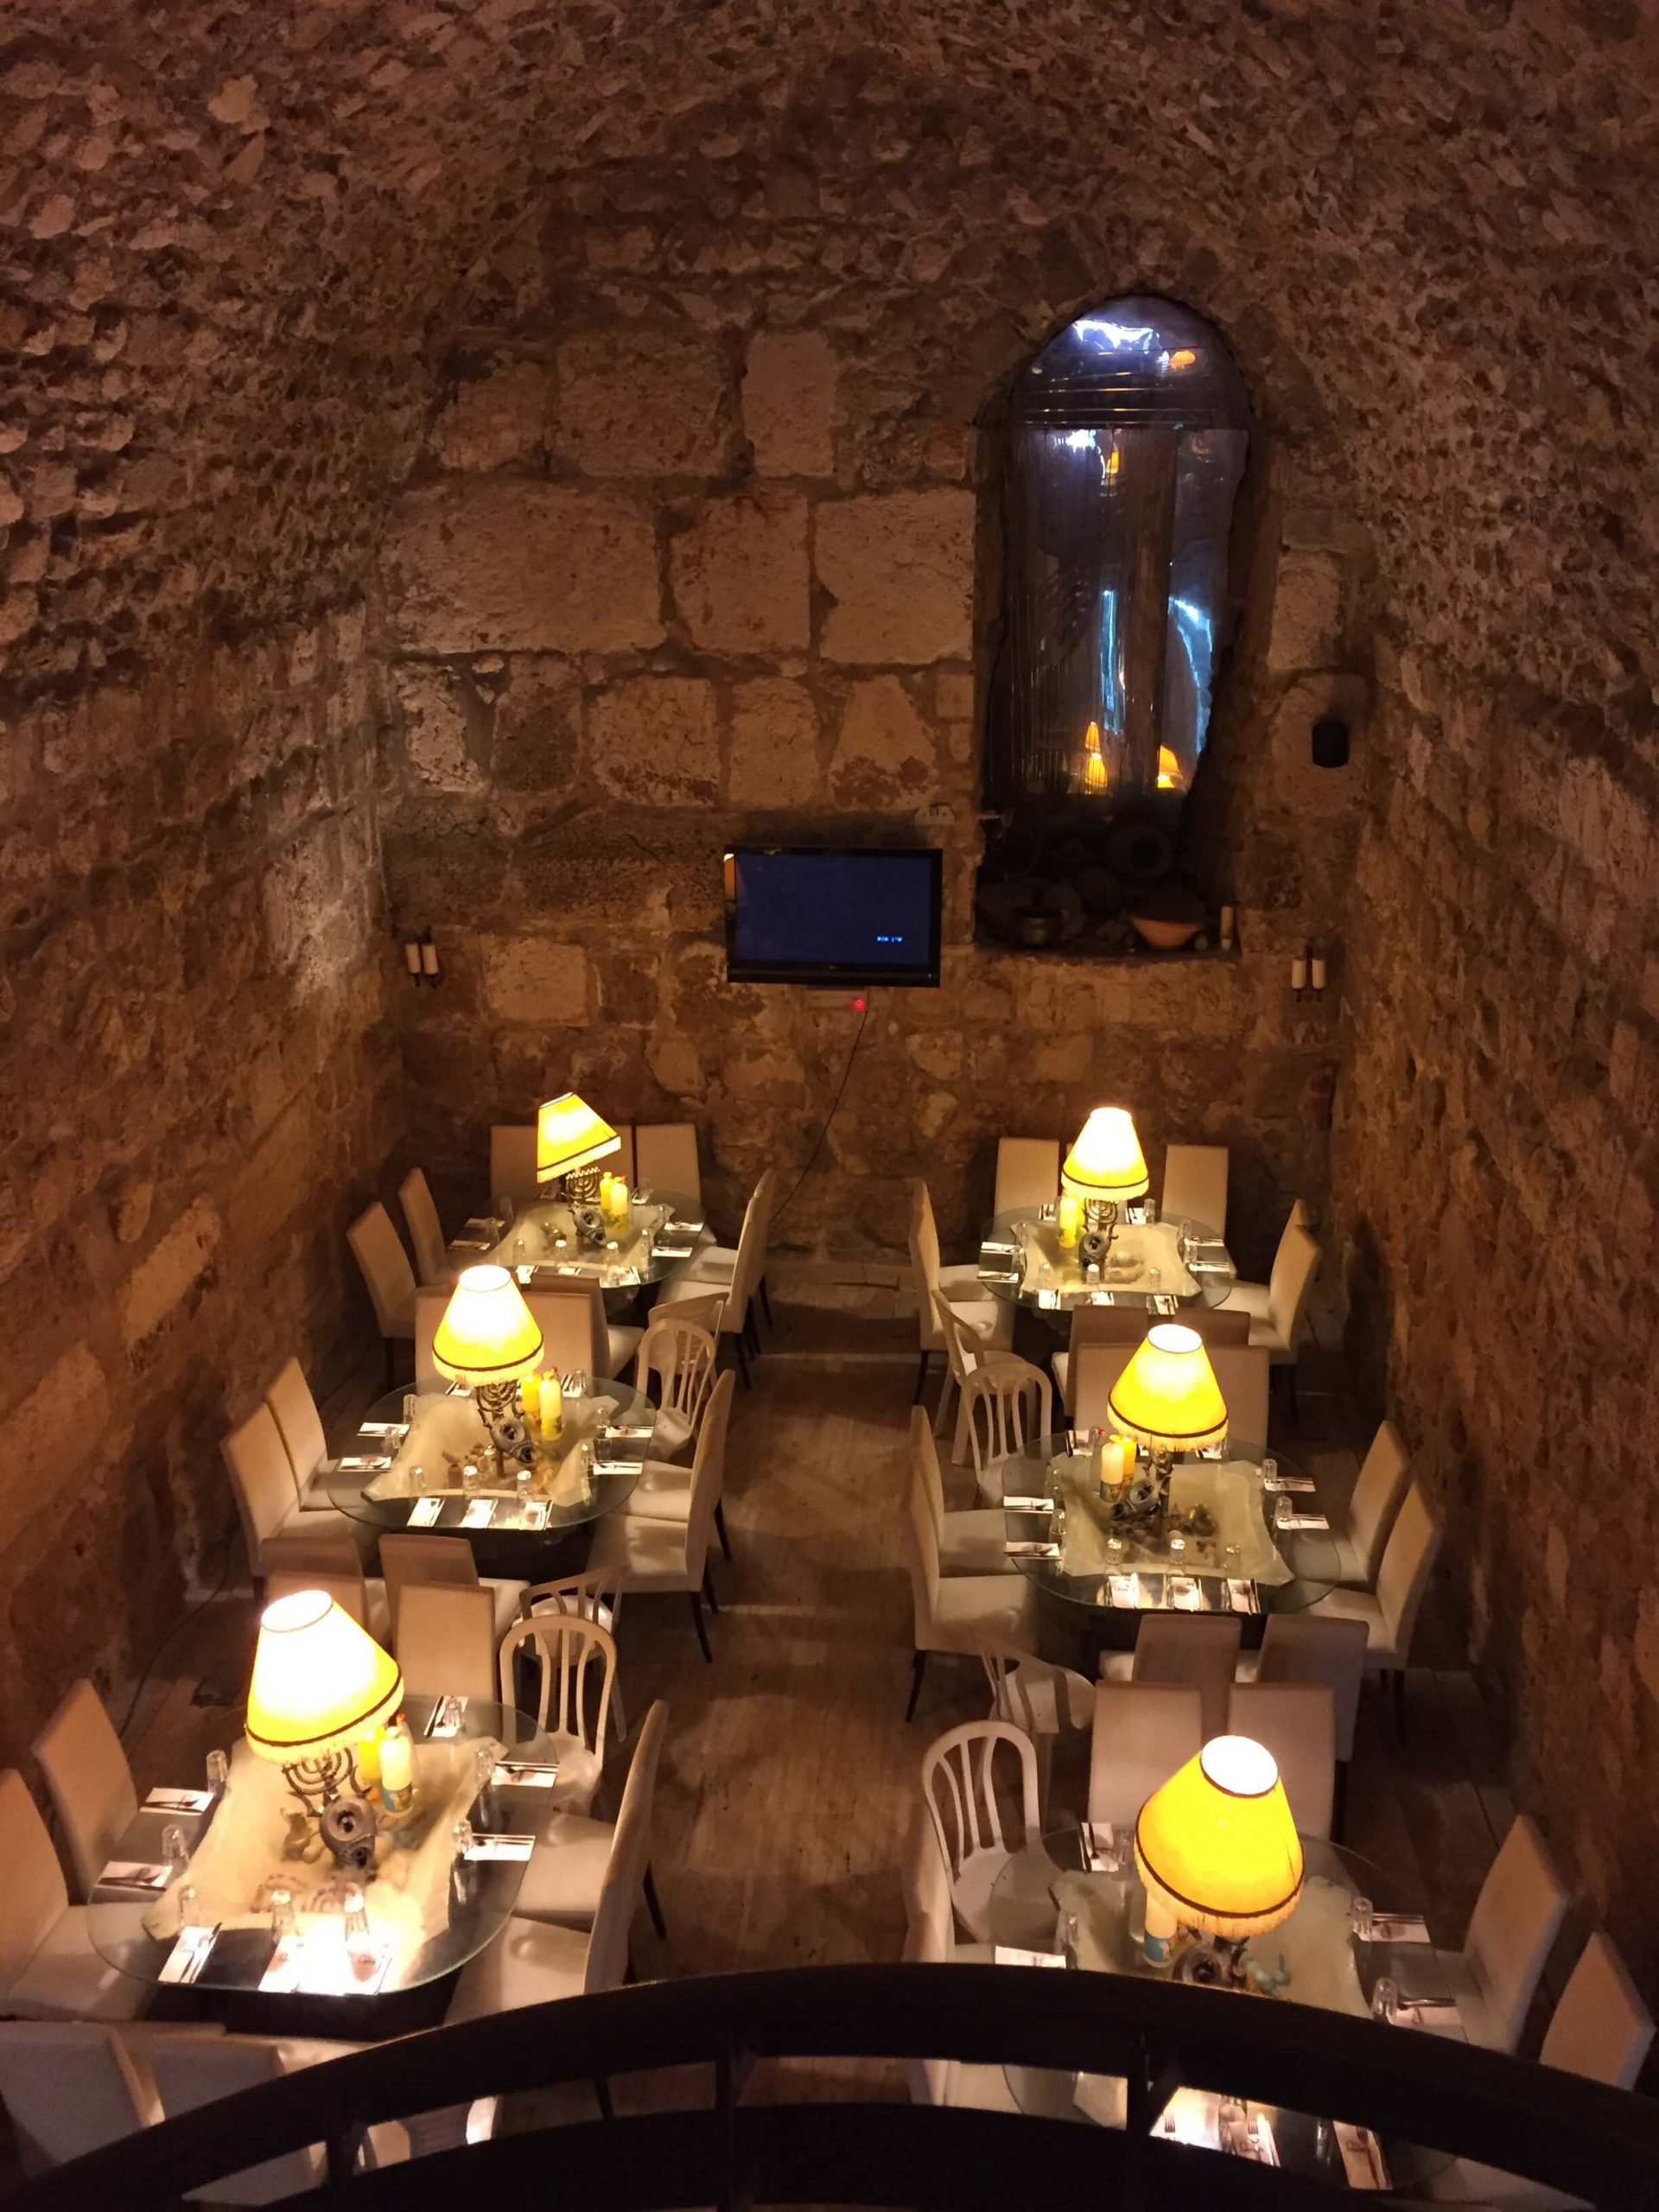 Between the Arches- Fun in Jerusalem